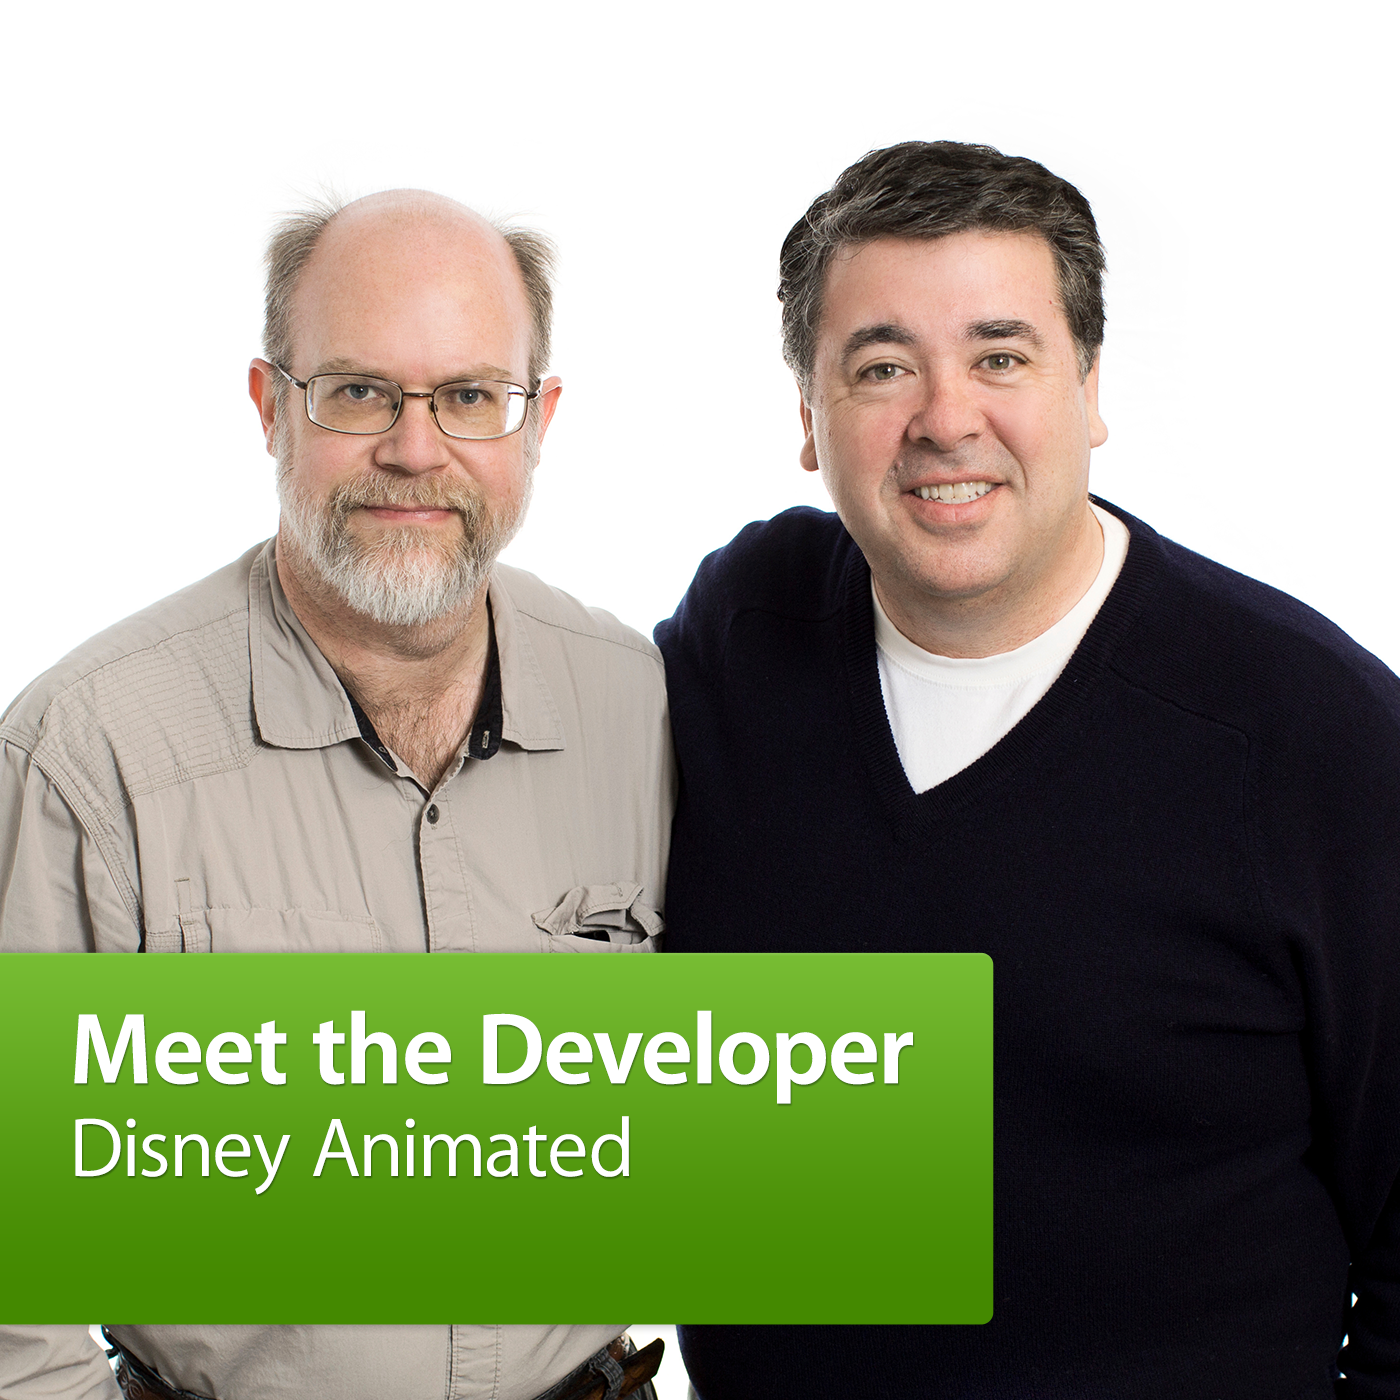 Disney Animated: Meet the Developer